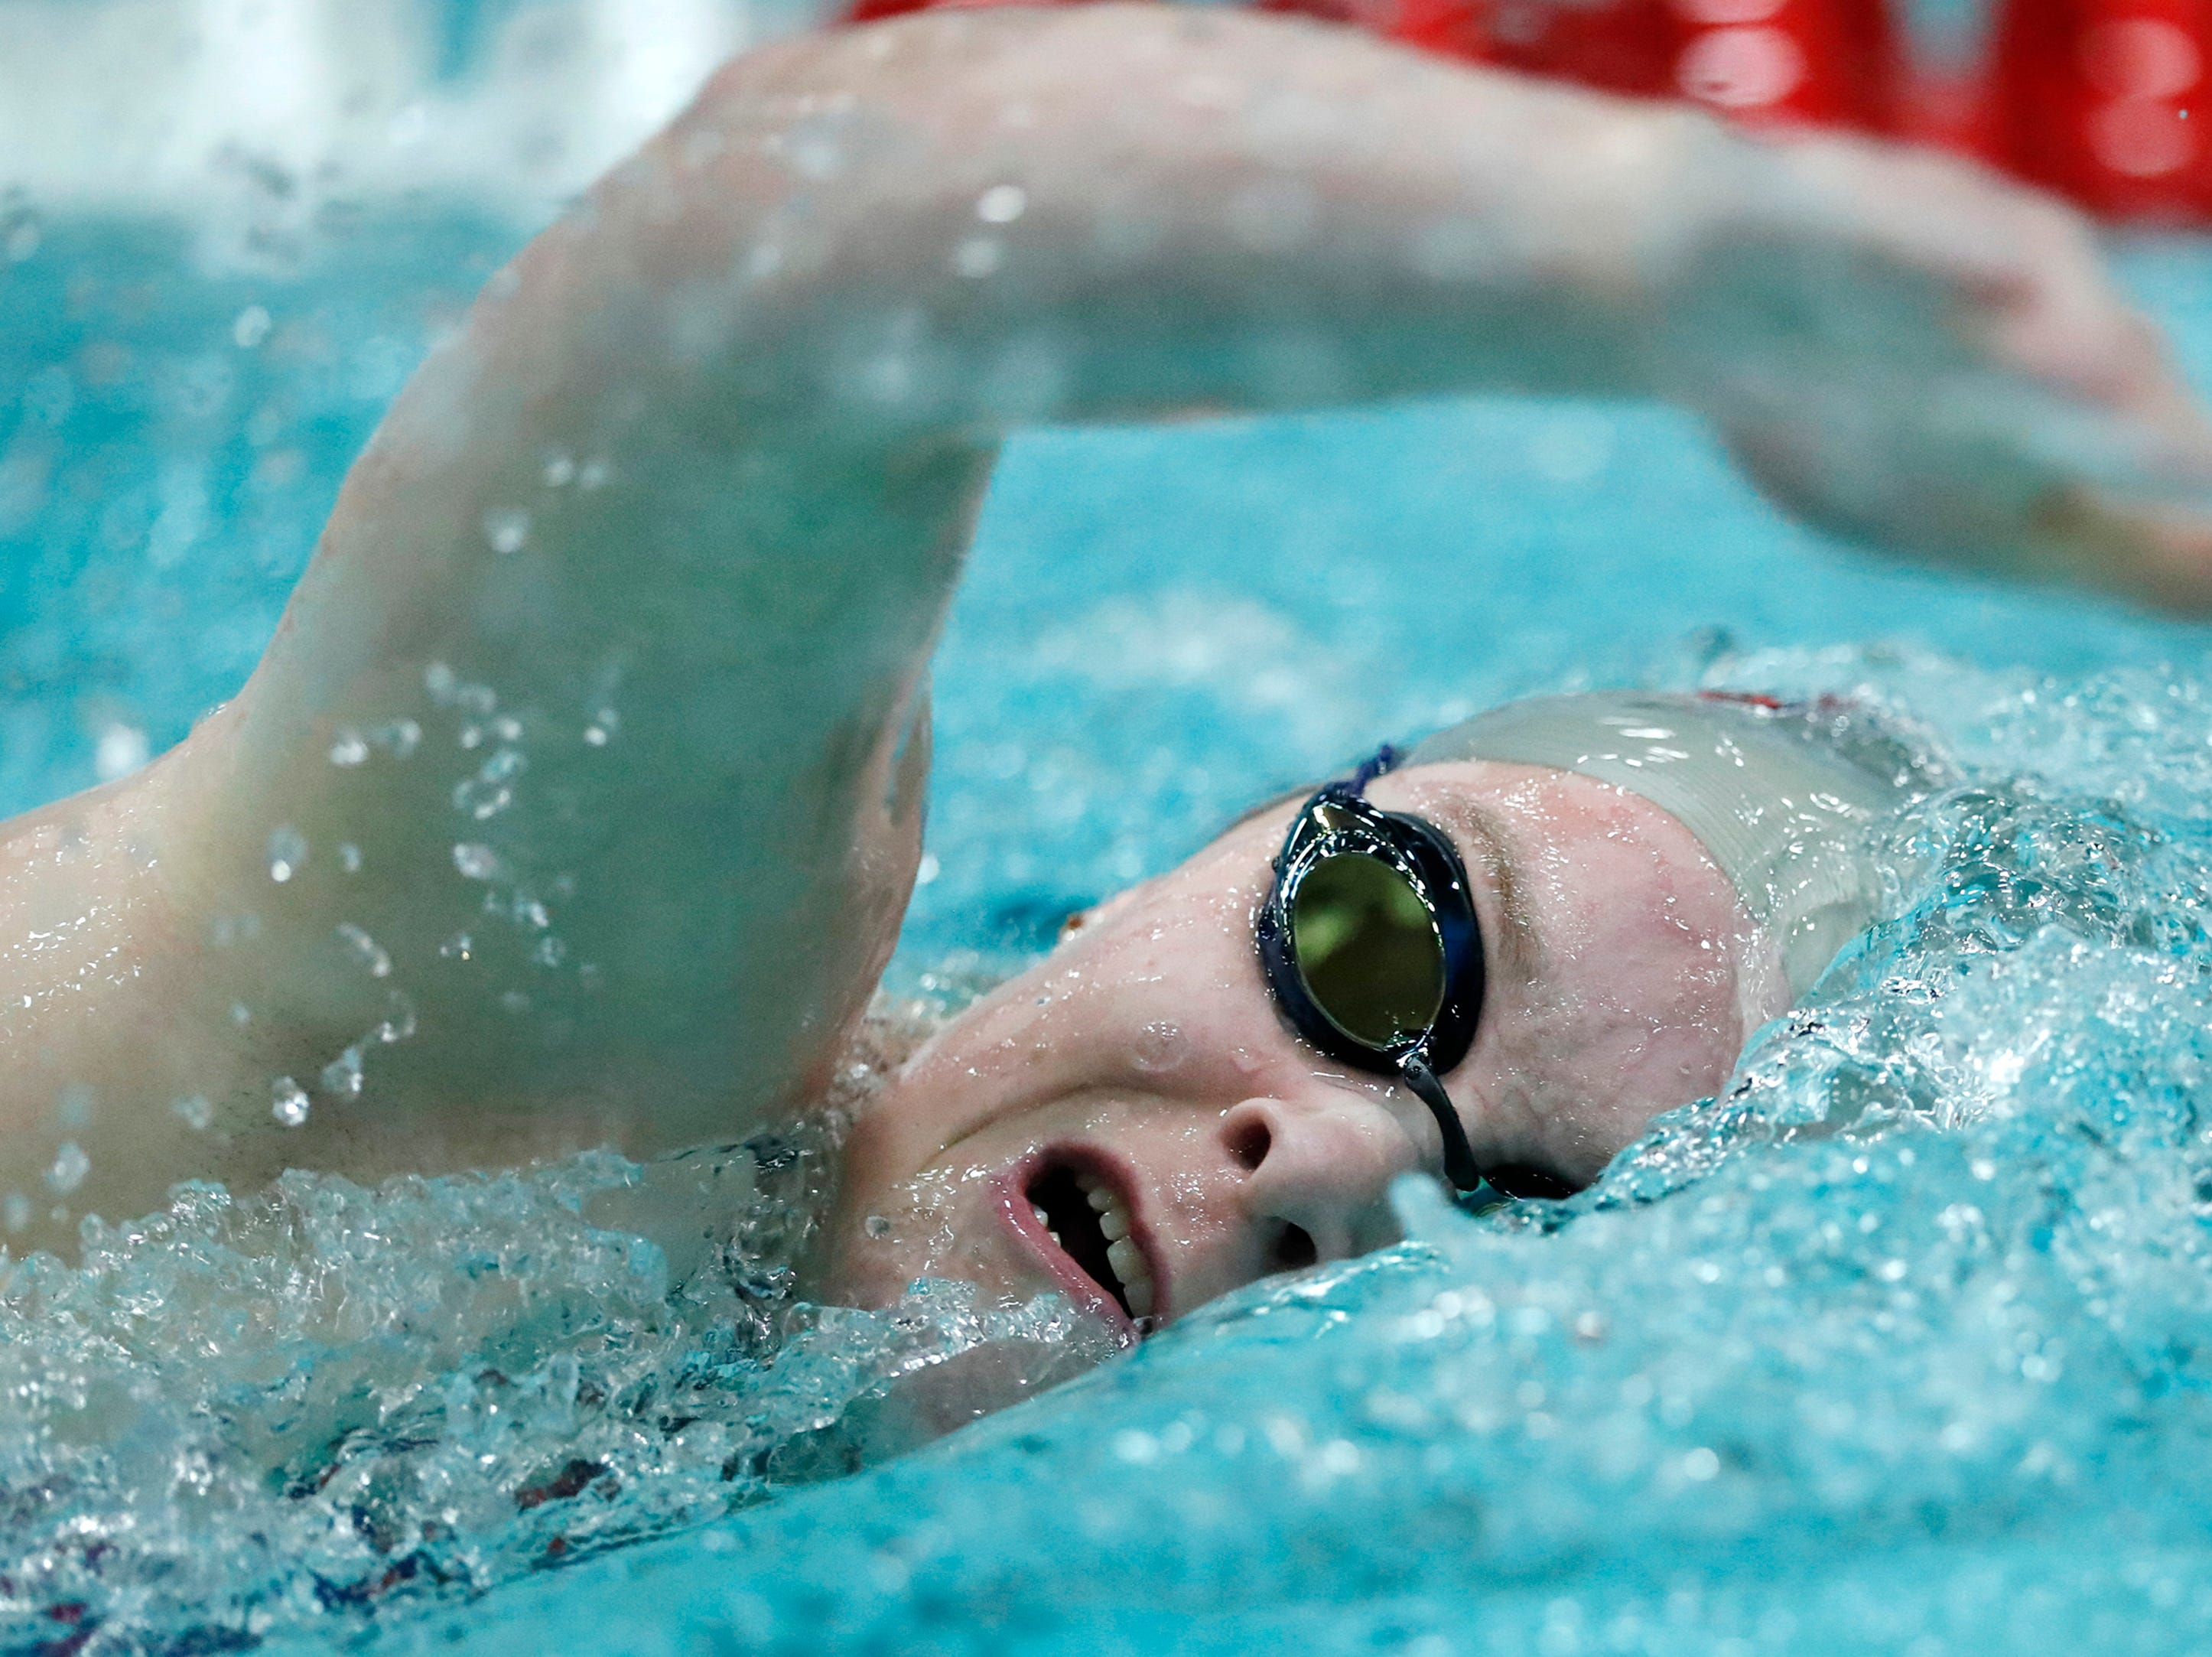 Medford's Erin Bergman races in the 200 yard freestyle during the WIAA Division 2 State Swimming and Diving meet Friday, Nov. 9, 2018, at the UW Natatorium in Madison, Wis.Danny Damiani/USA TODAY NETWORK-Wisconsin